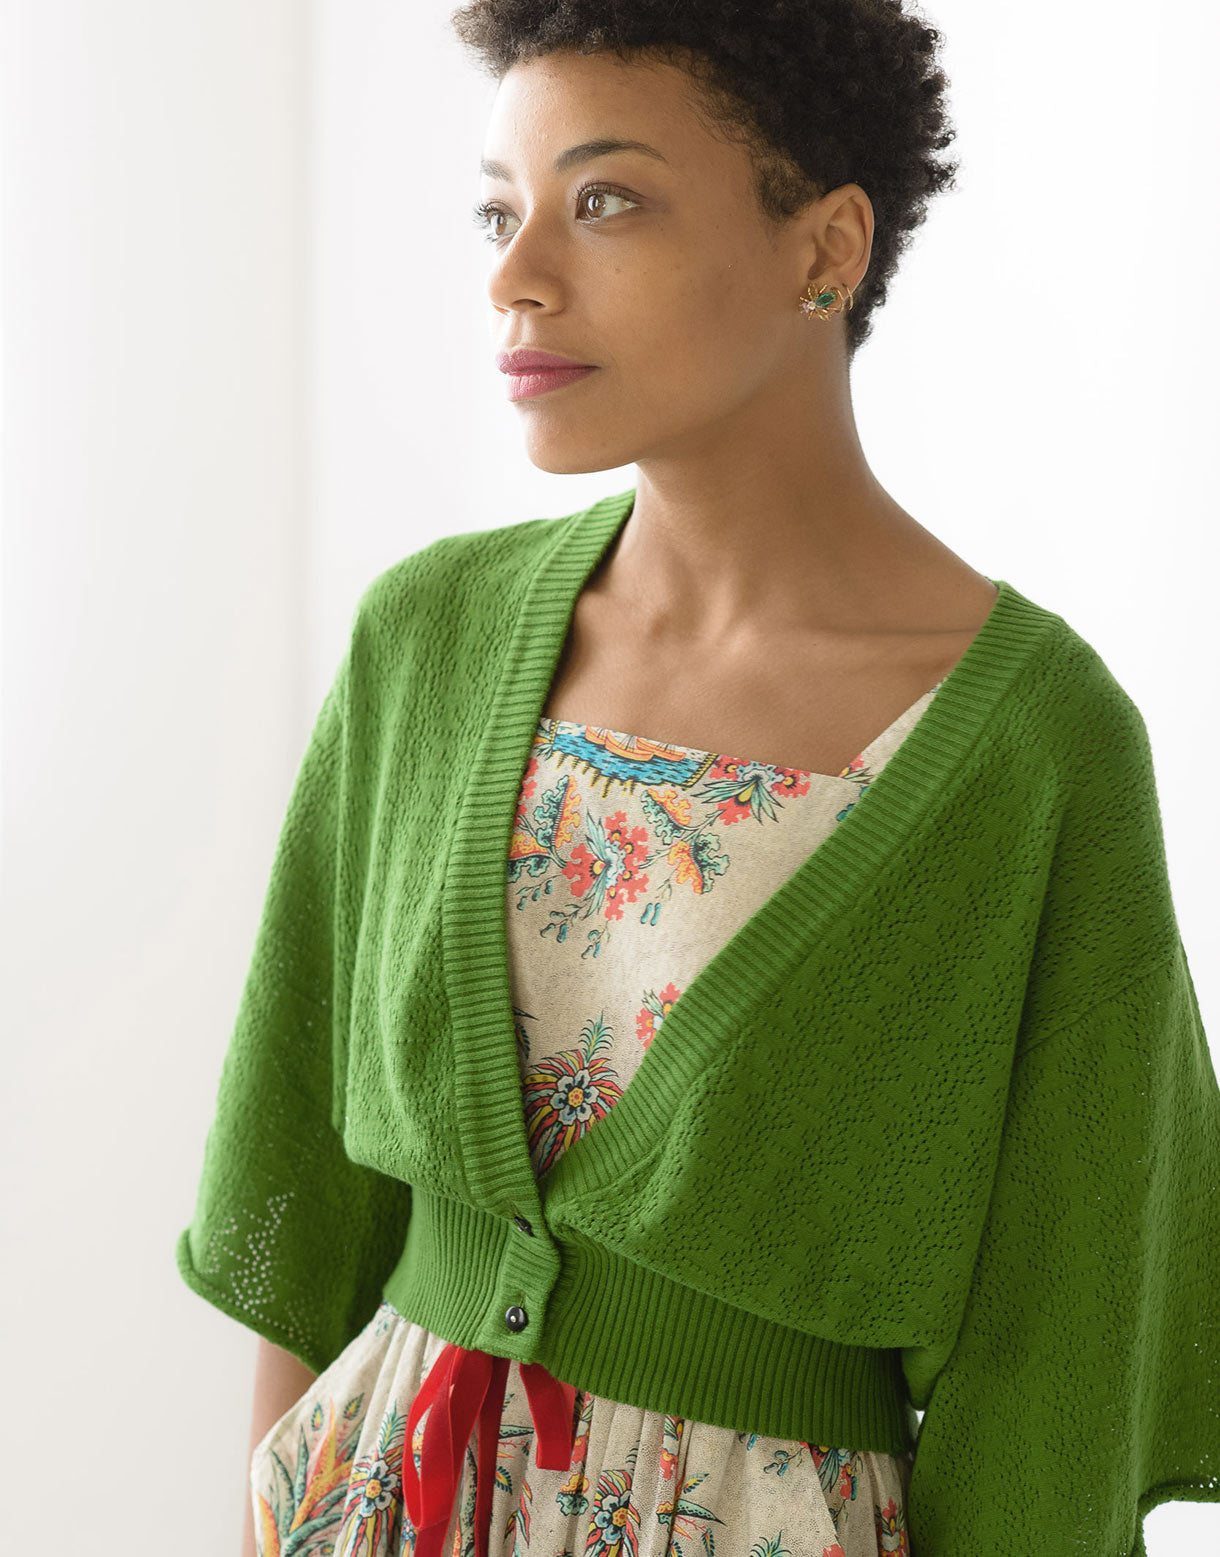 Pamela cardigan in Clover *organic cotton